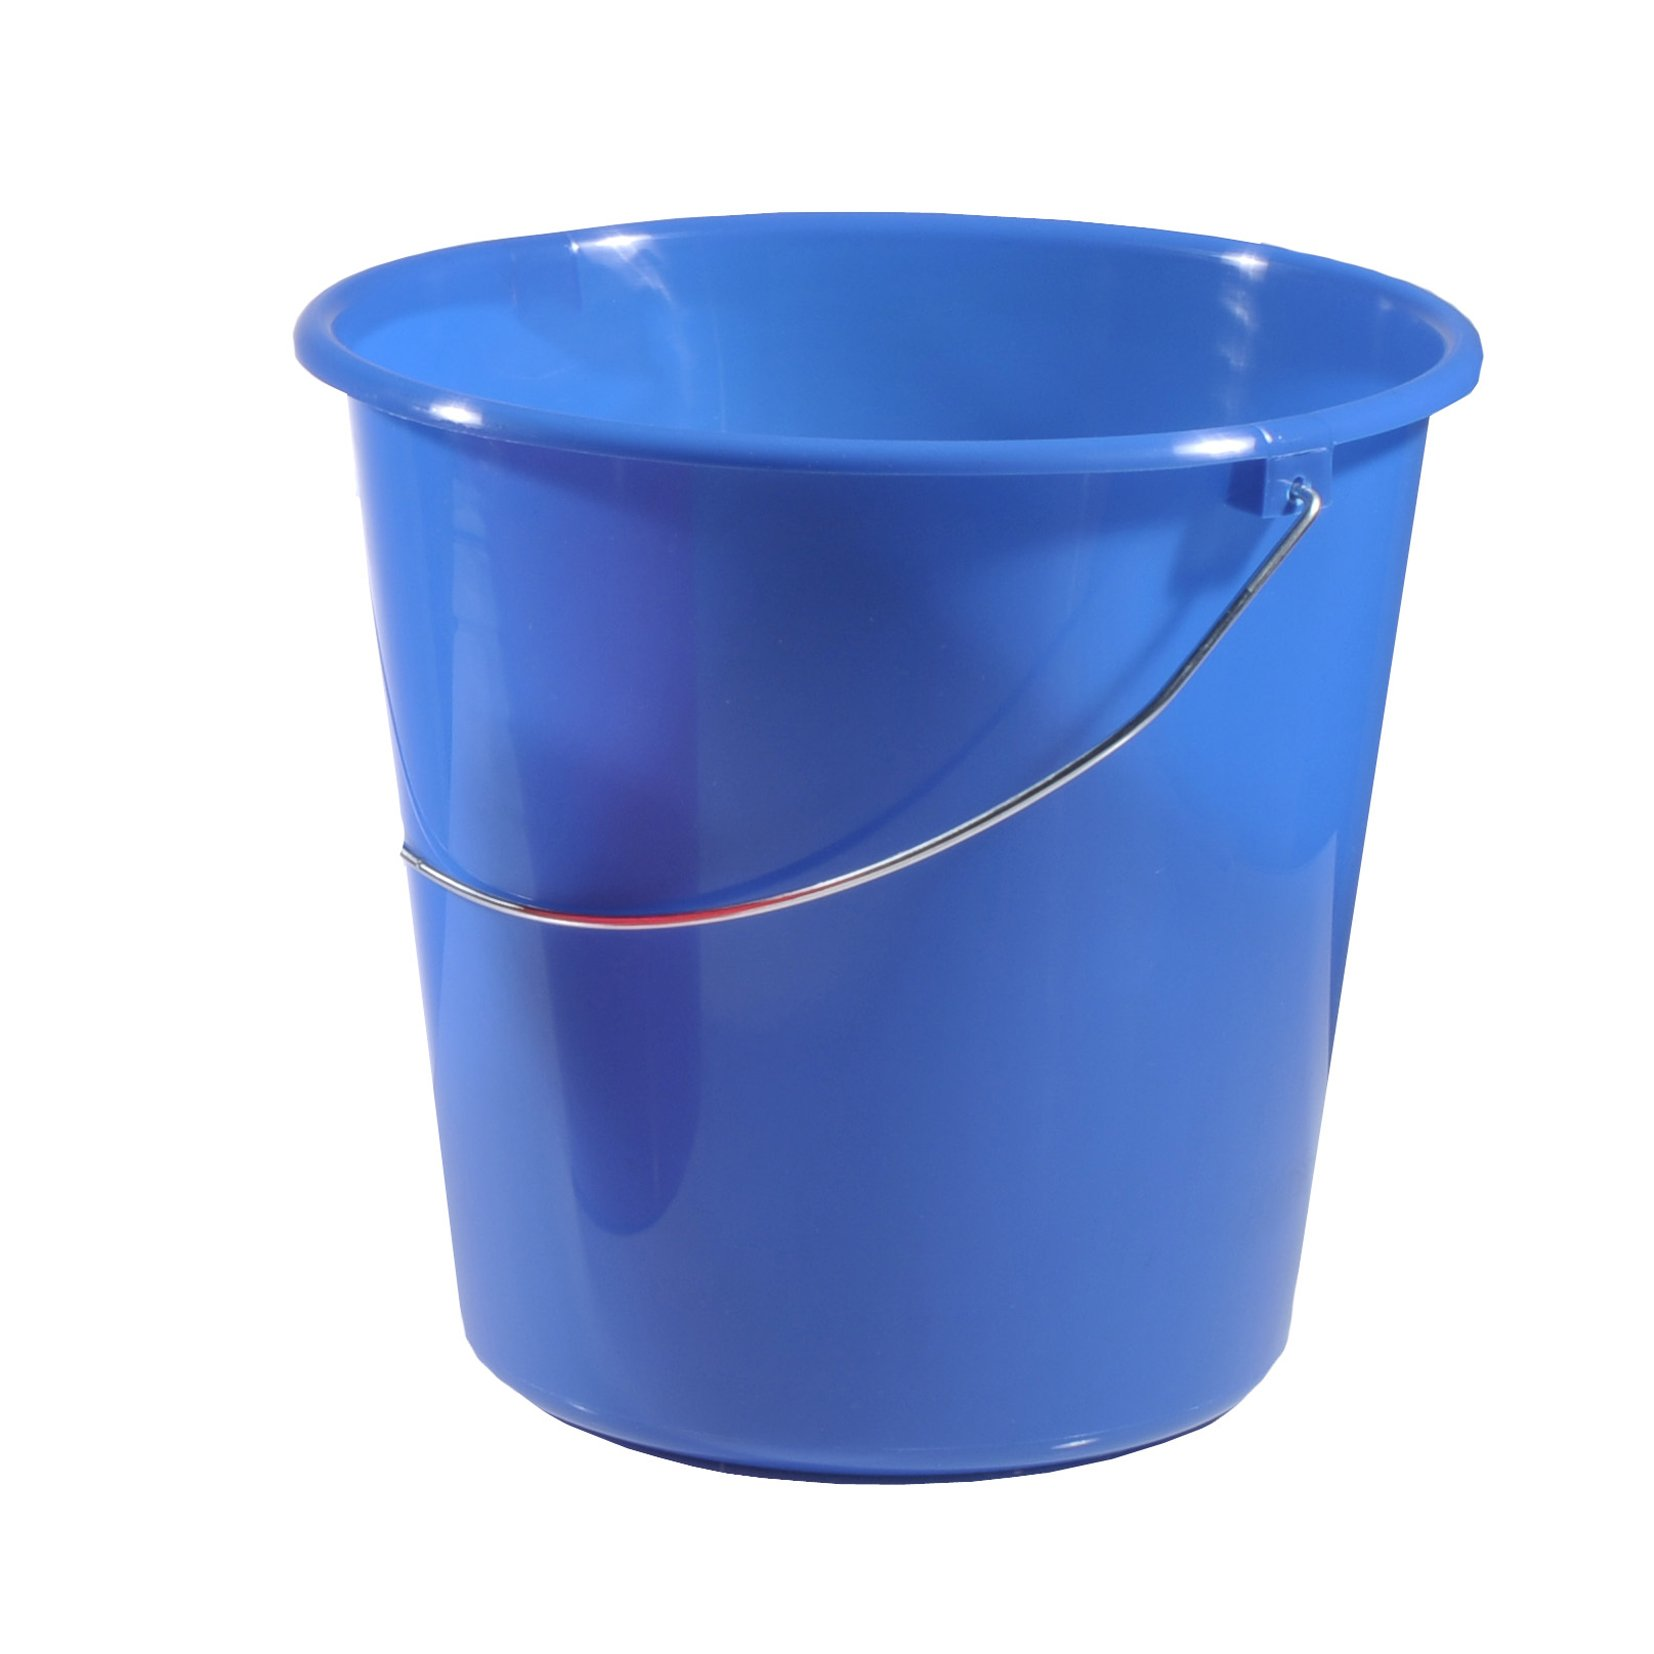 Gies Bucket with Metal Handle, 10 L, Multicolour, One Size